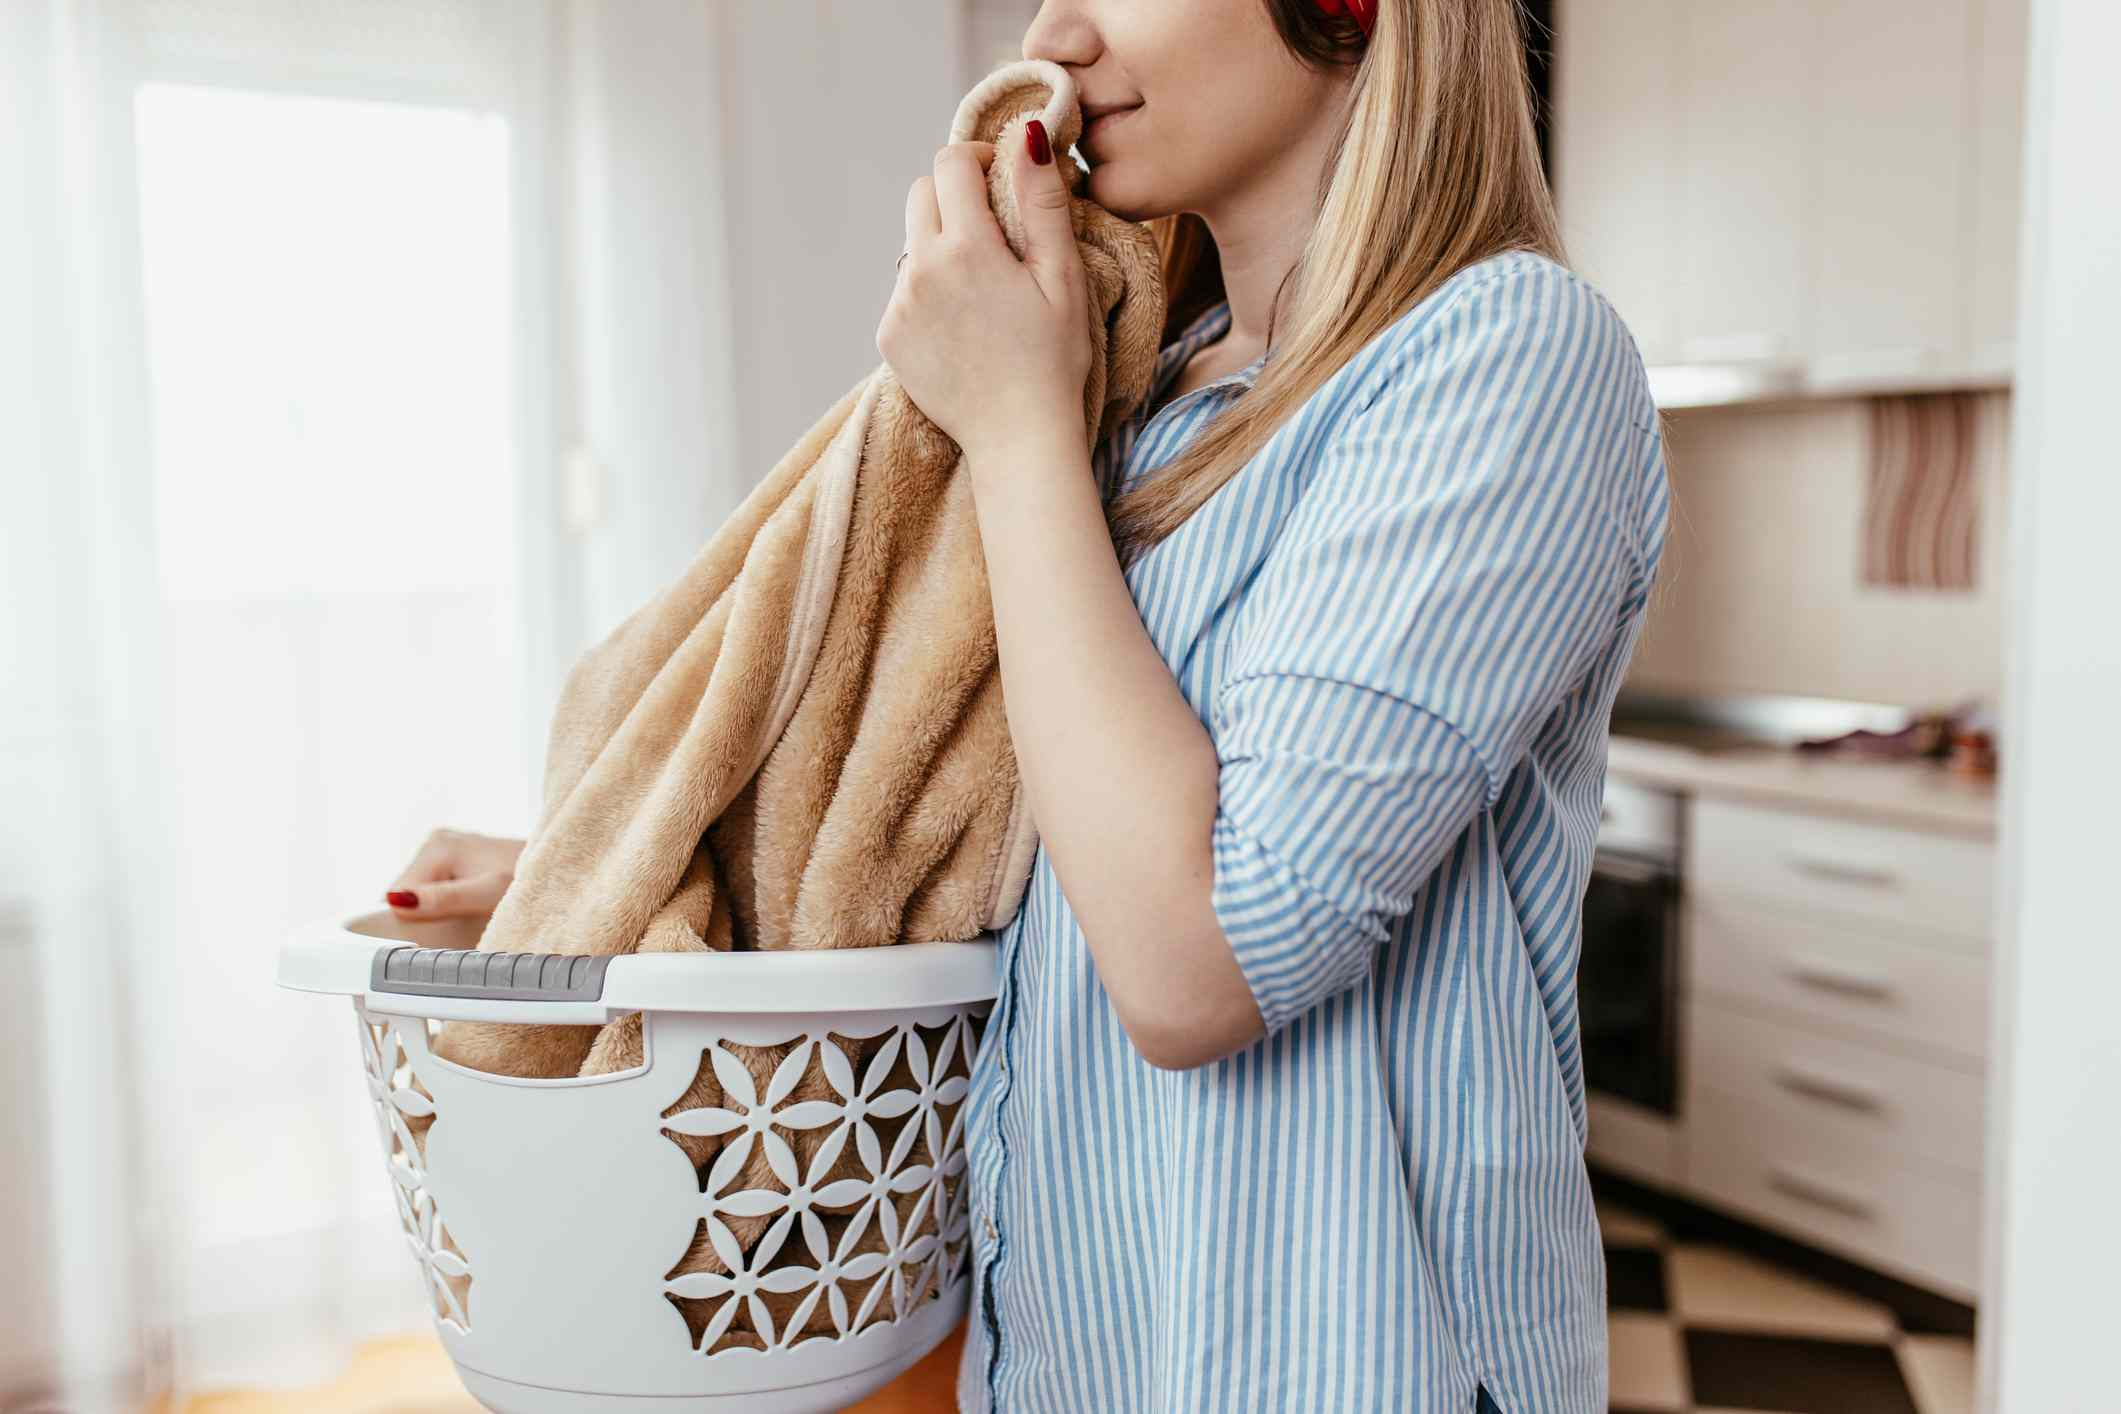 woman smelling clean laundry